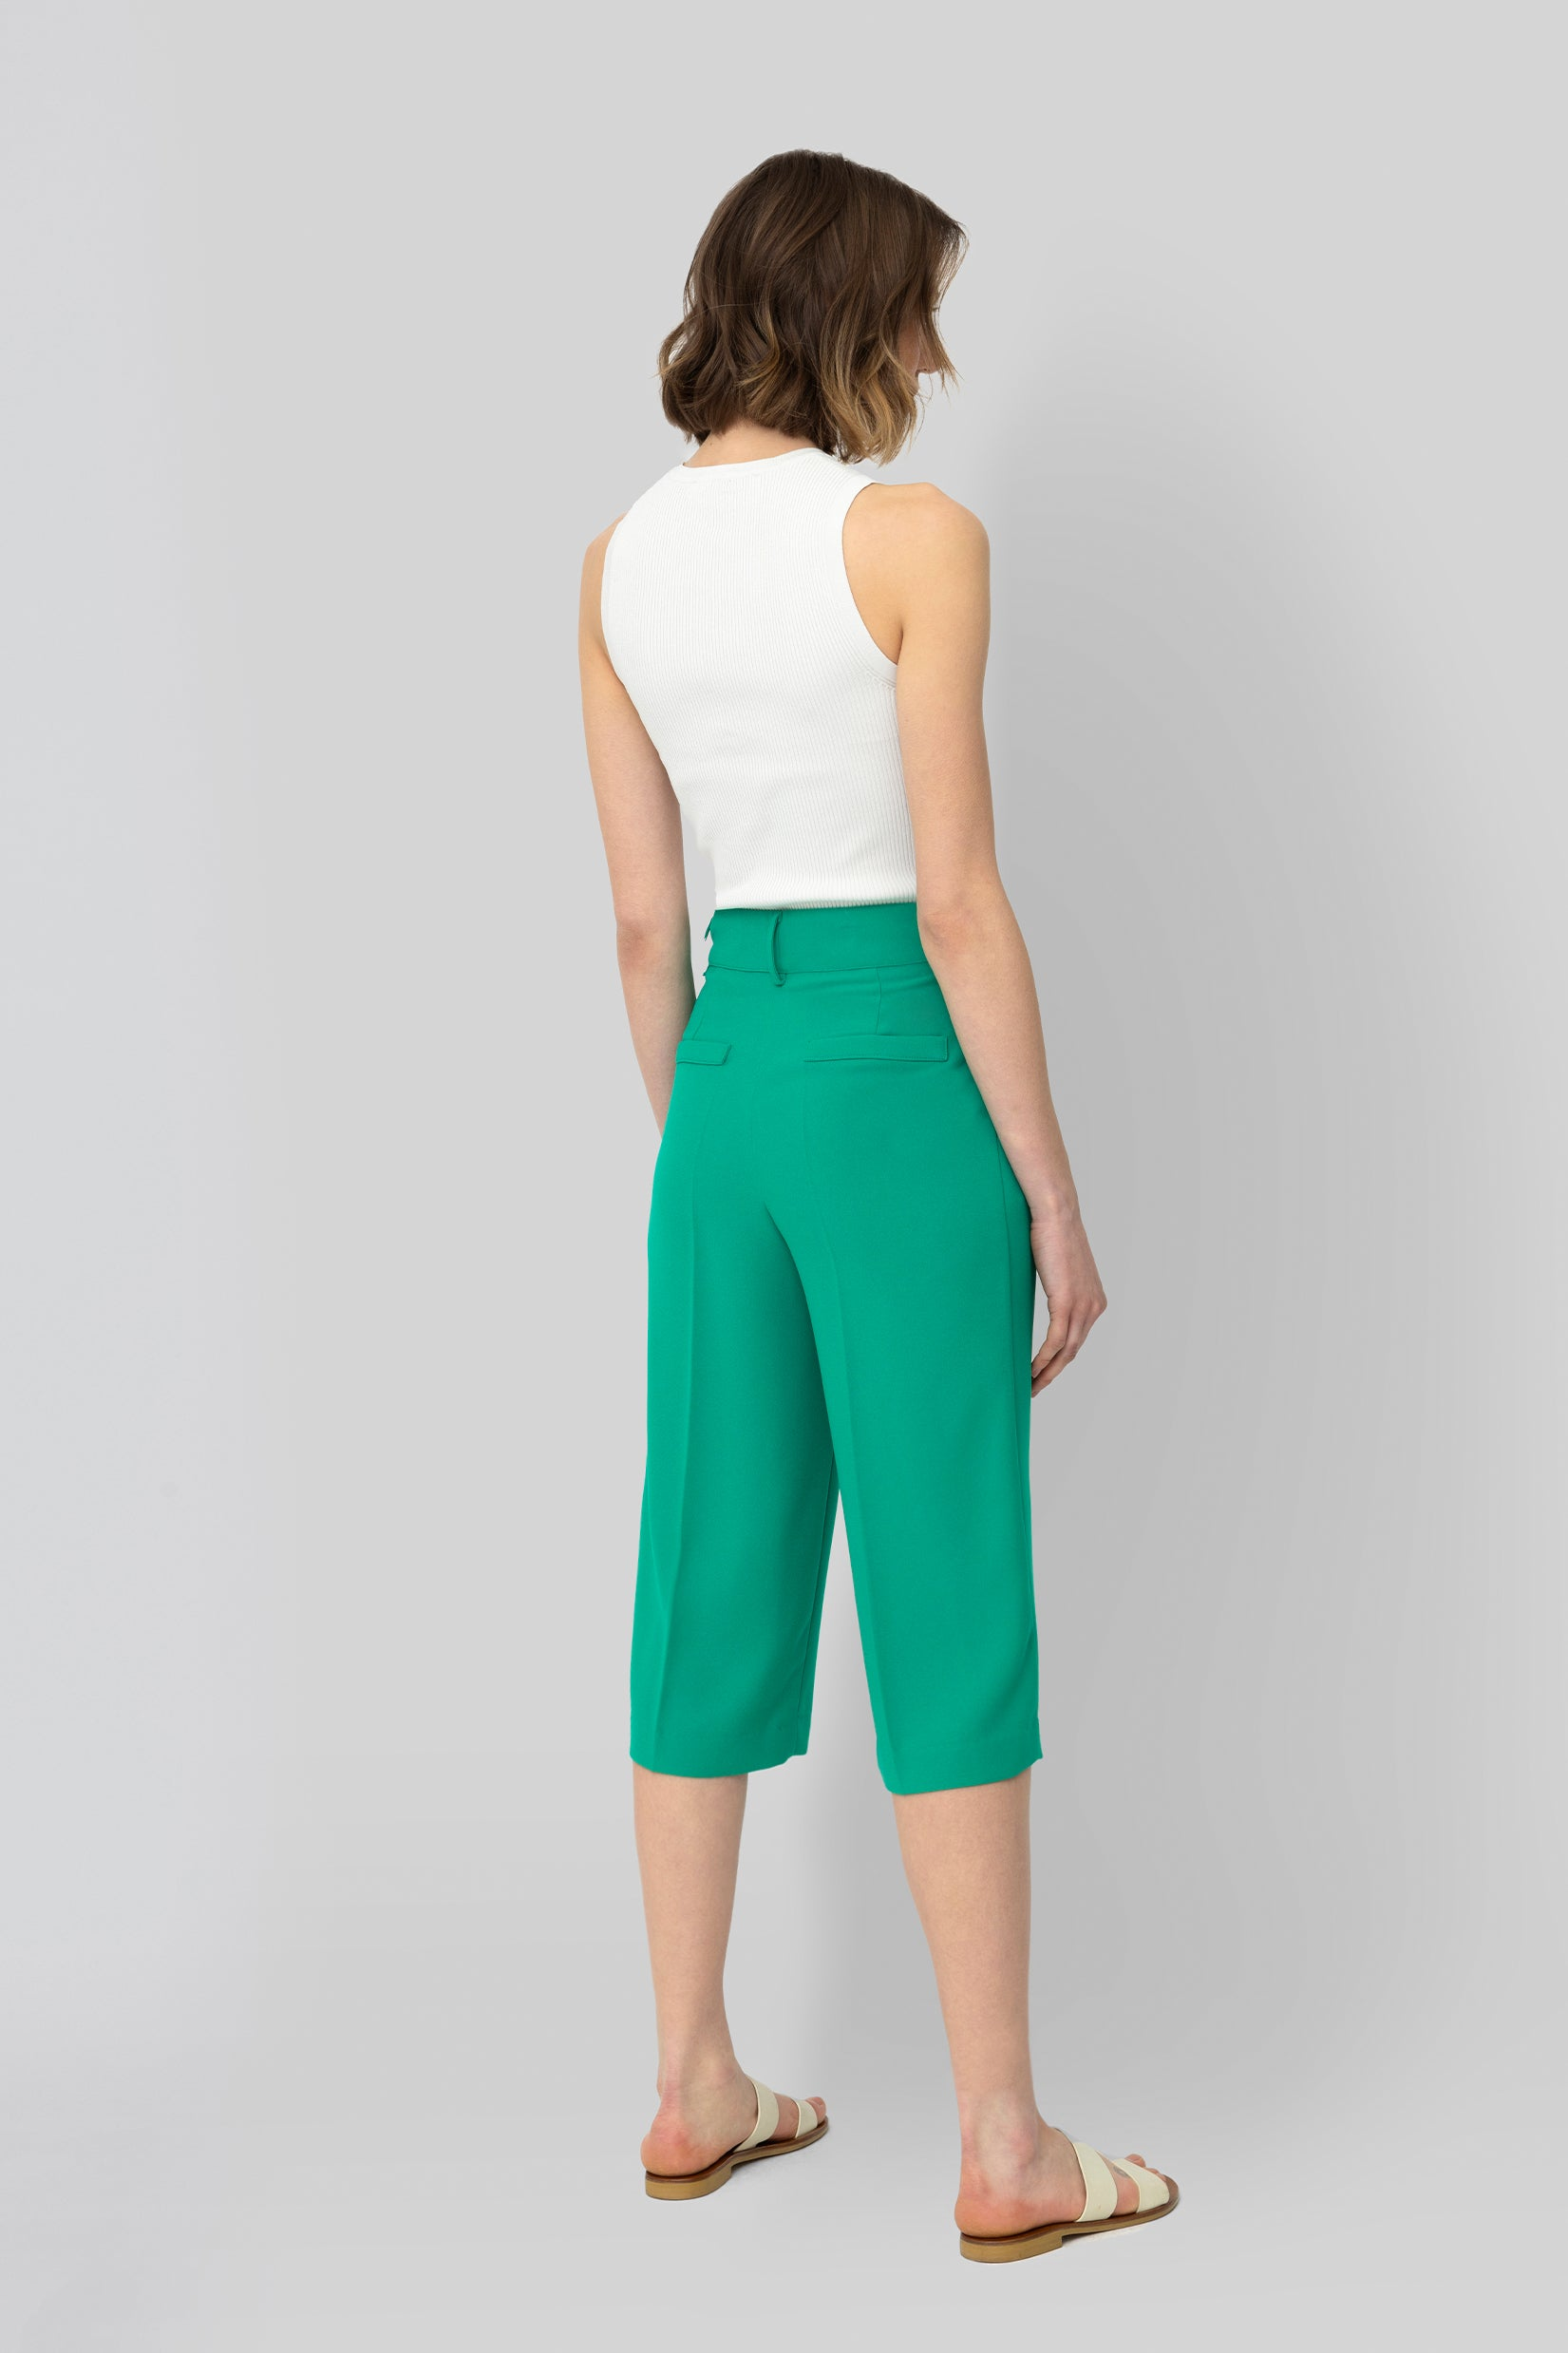 The Emerald Crepe Bermuda